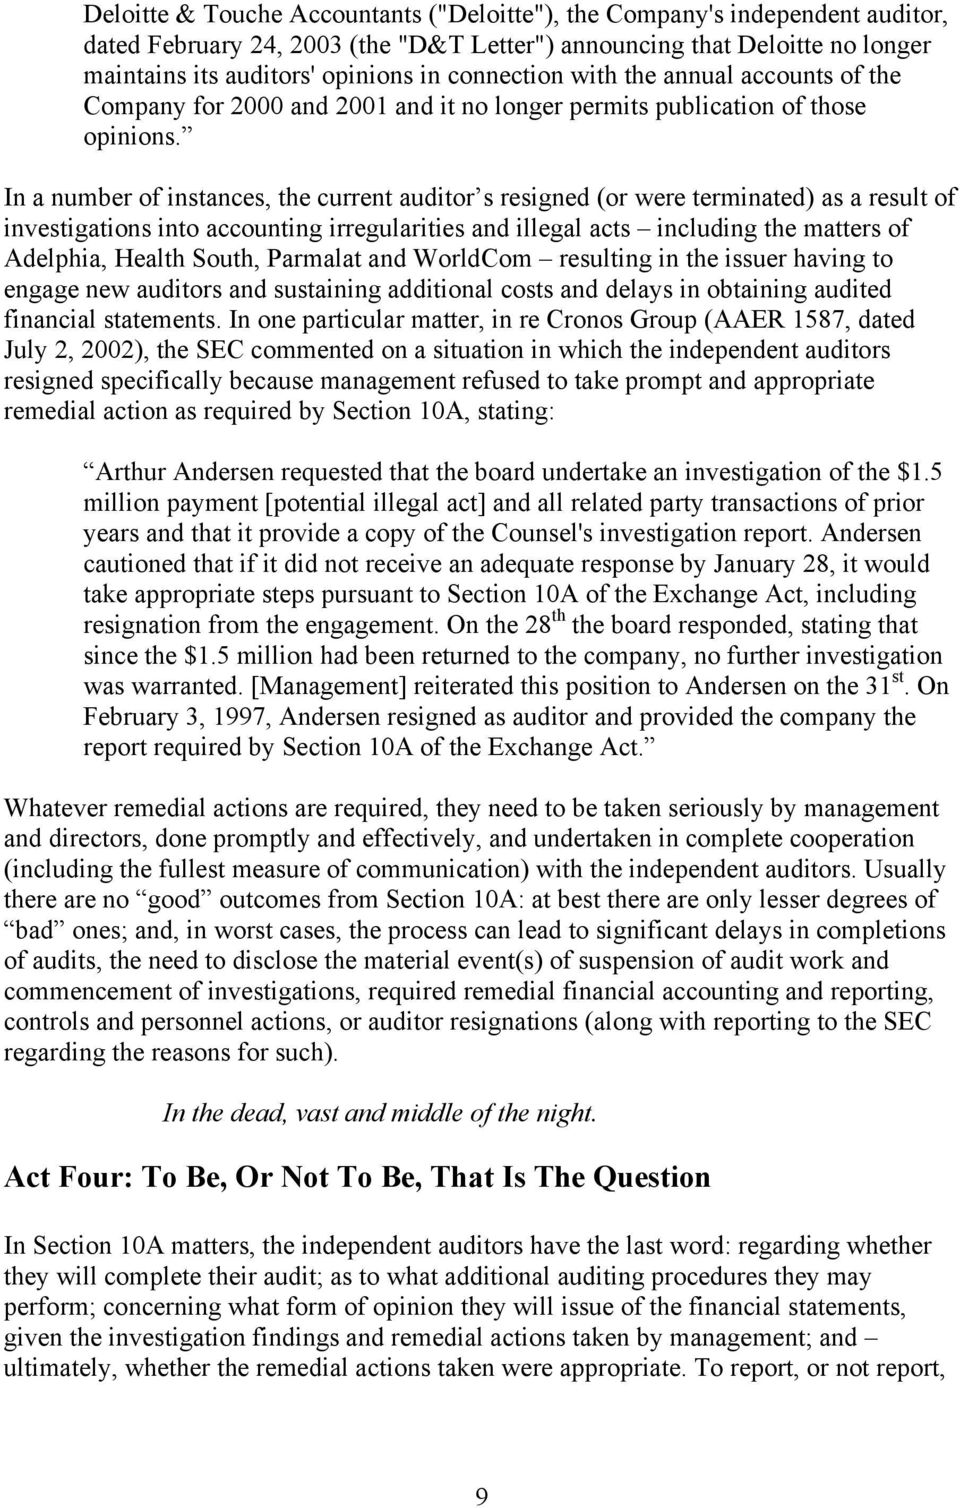 In a number of instances, the current auditor s resigned (or were terminated) as a result of investigations into accounting irregularities and illegal acts including the matters of Adelphia, Health